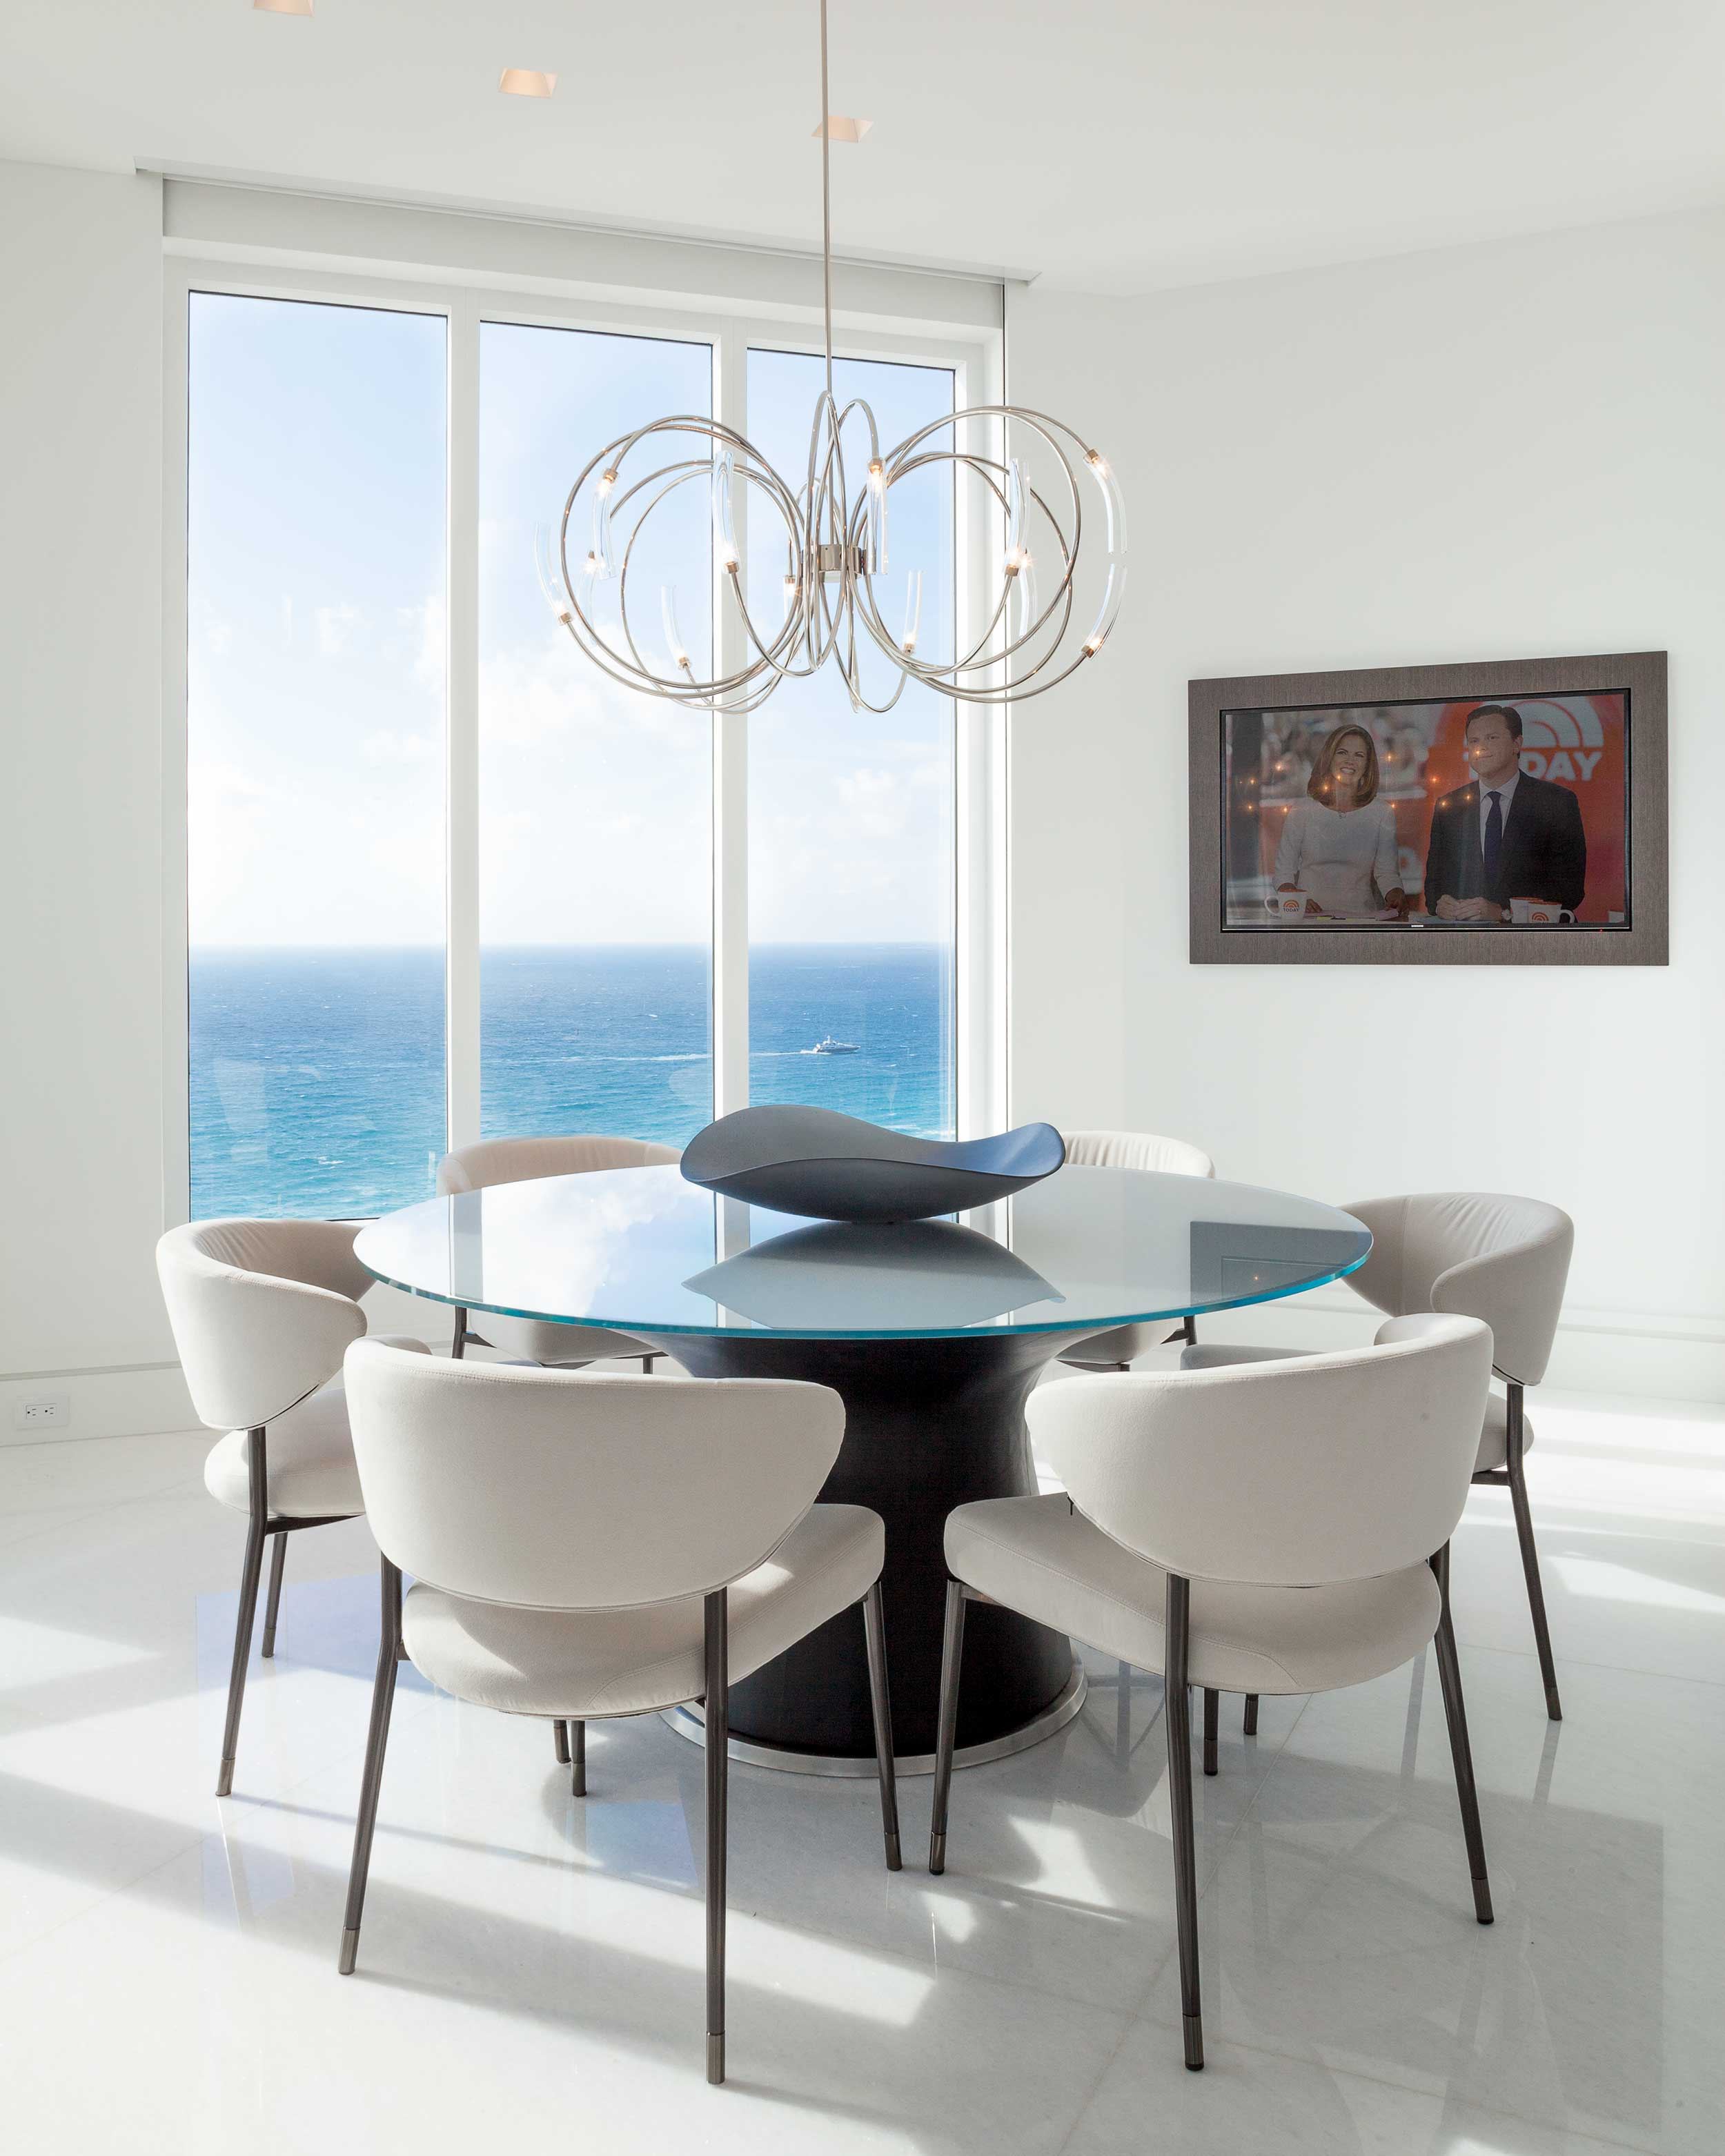 Dining room interior design with ocean view